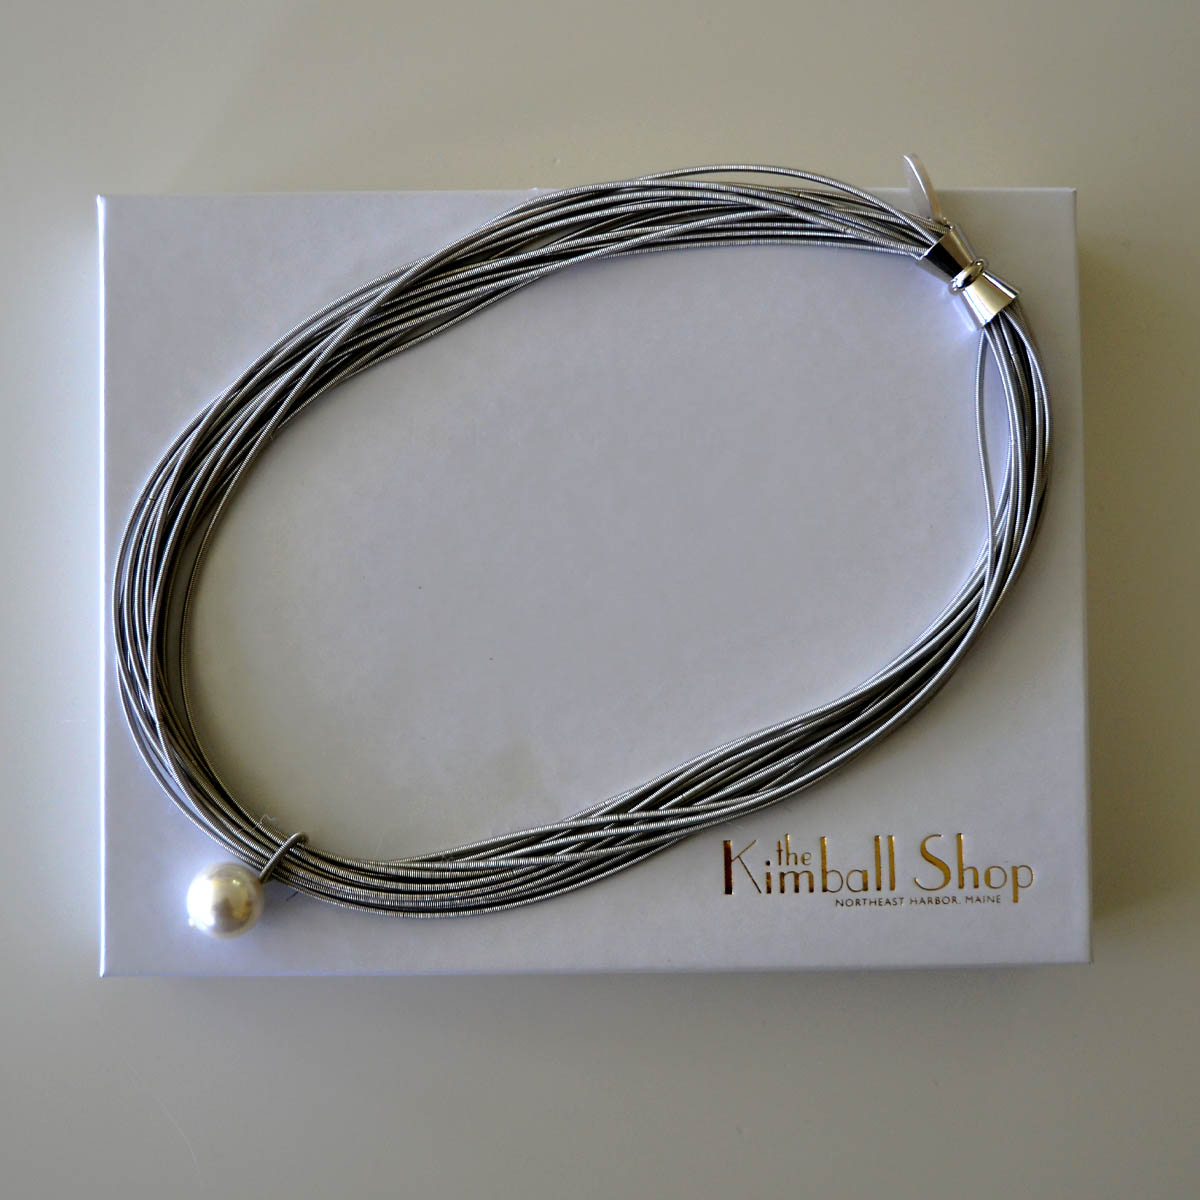 Silver Rope Necklace - Provided by a generous anonymous donor, this silver rope necklace features a single pearl. Informal but elegant, this necklace works with virtually any outfit.Retail Value: $60.00